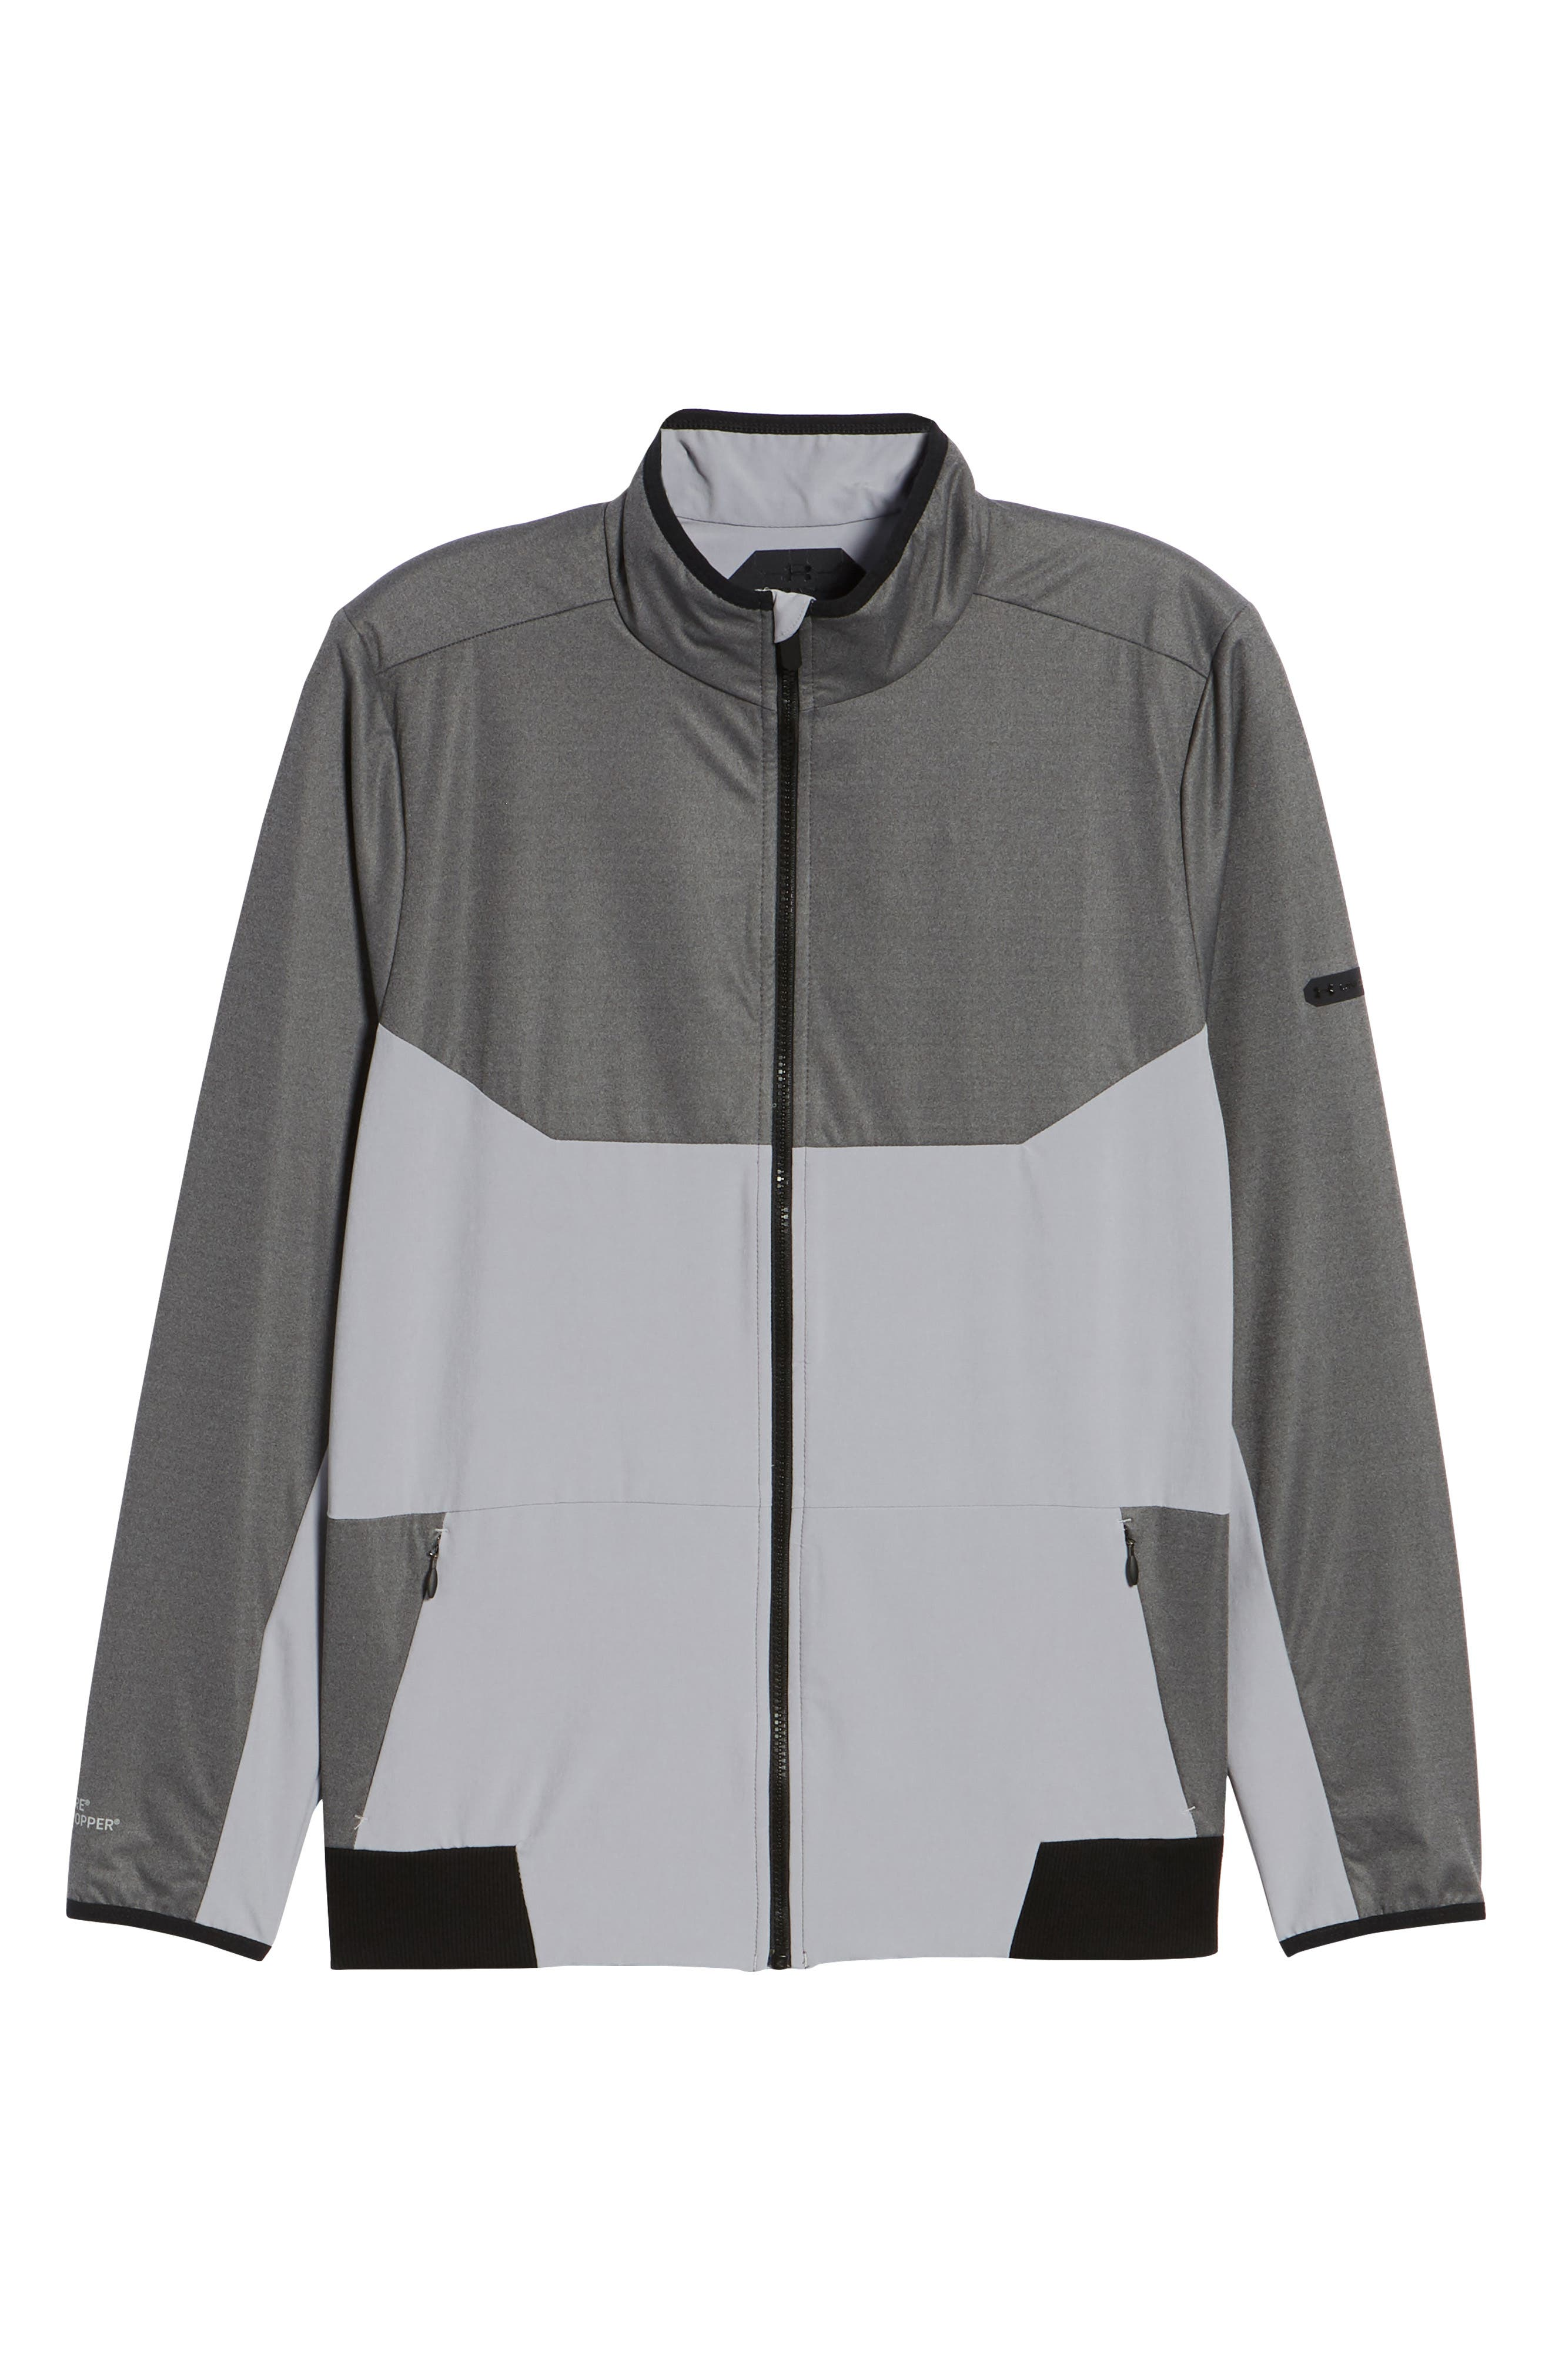 Gore<sup>®</sup> Windstopper<sup>®</sup> Full Zip Jacket,                             Alternate thumbnail 5, color,                             CHARCOAL / OVERCAST